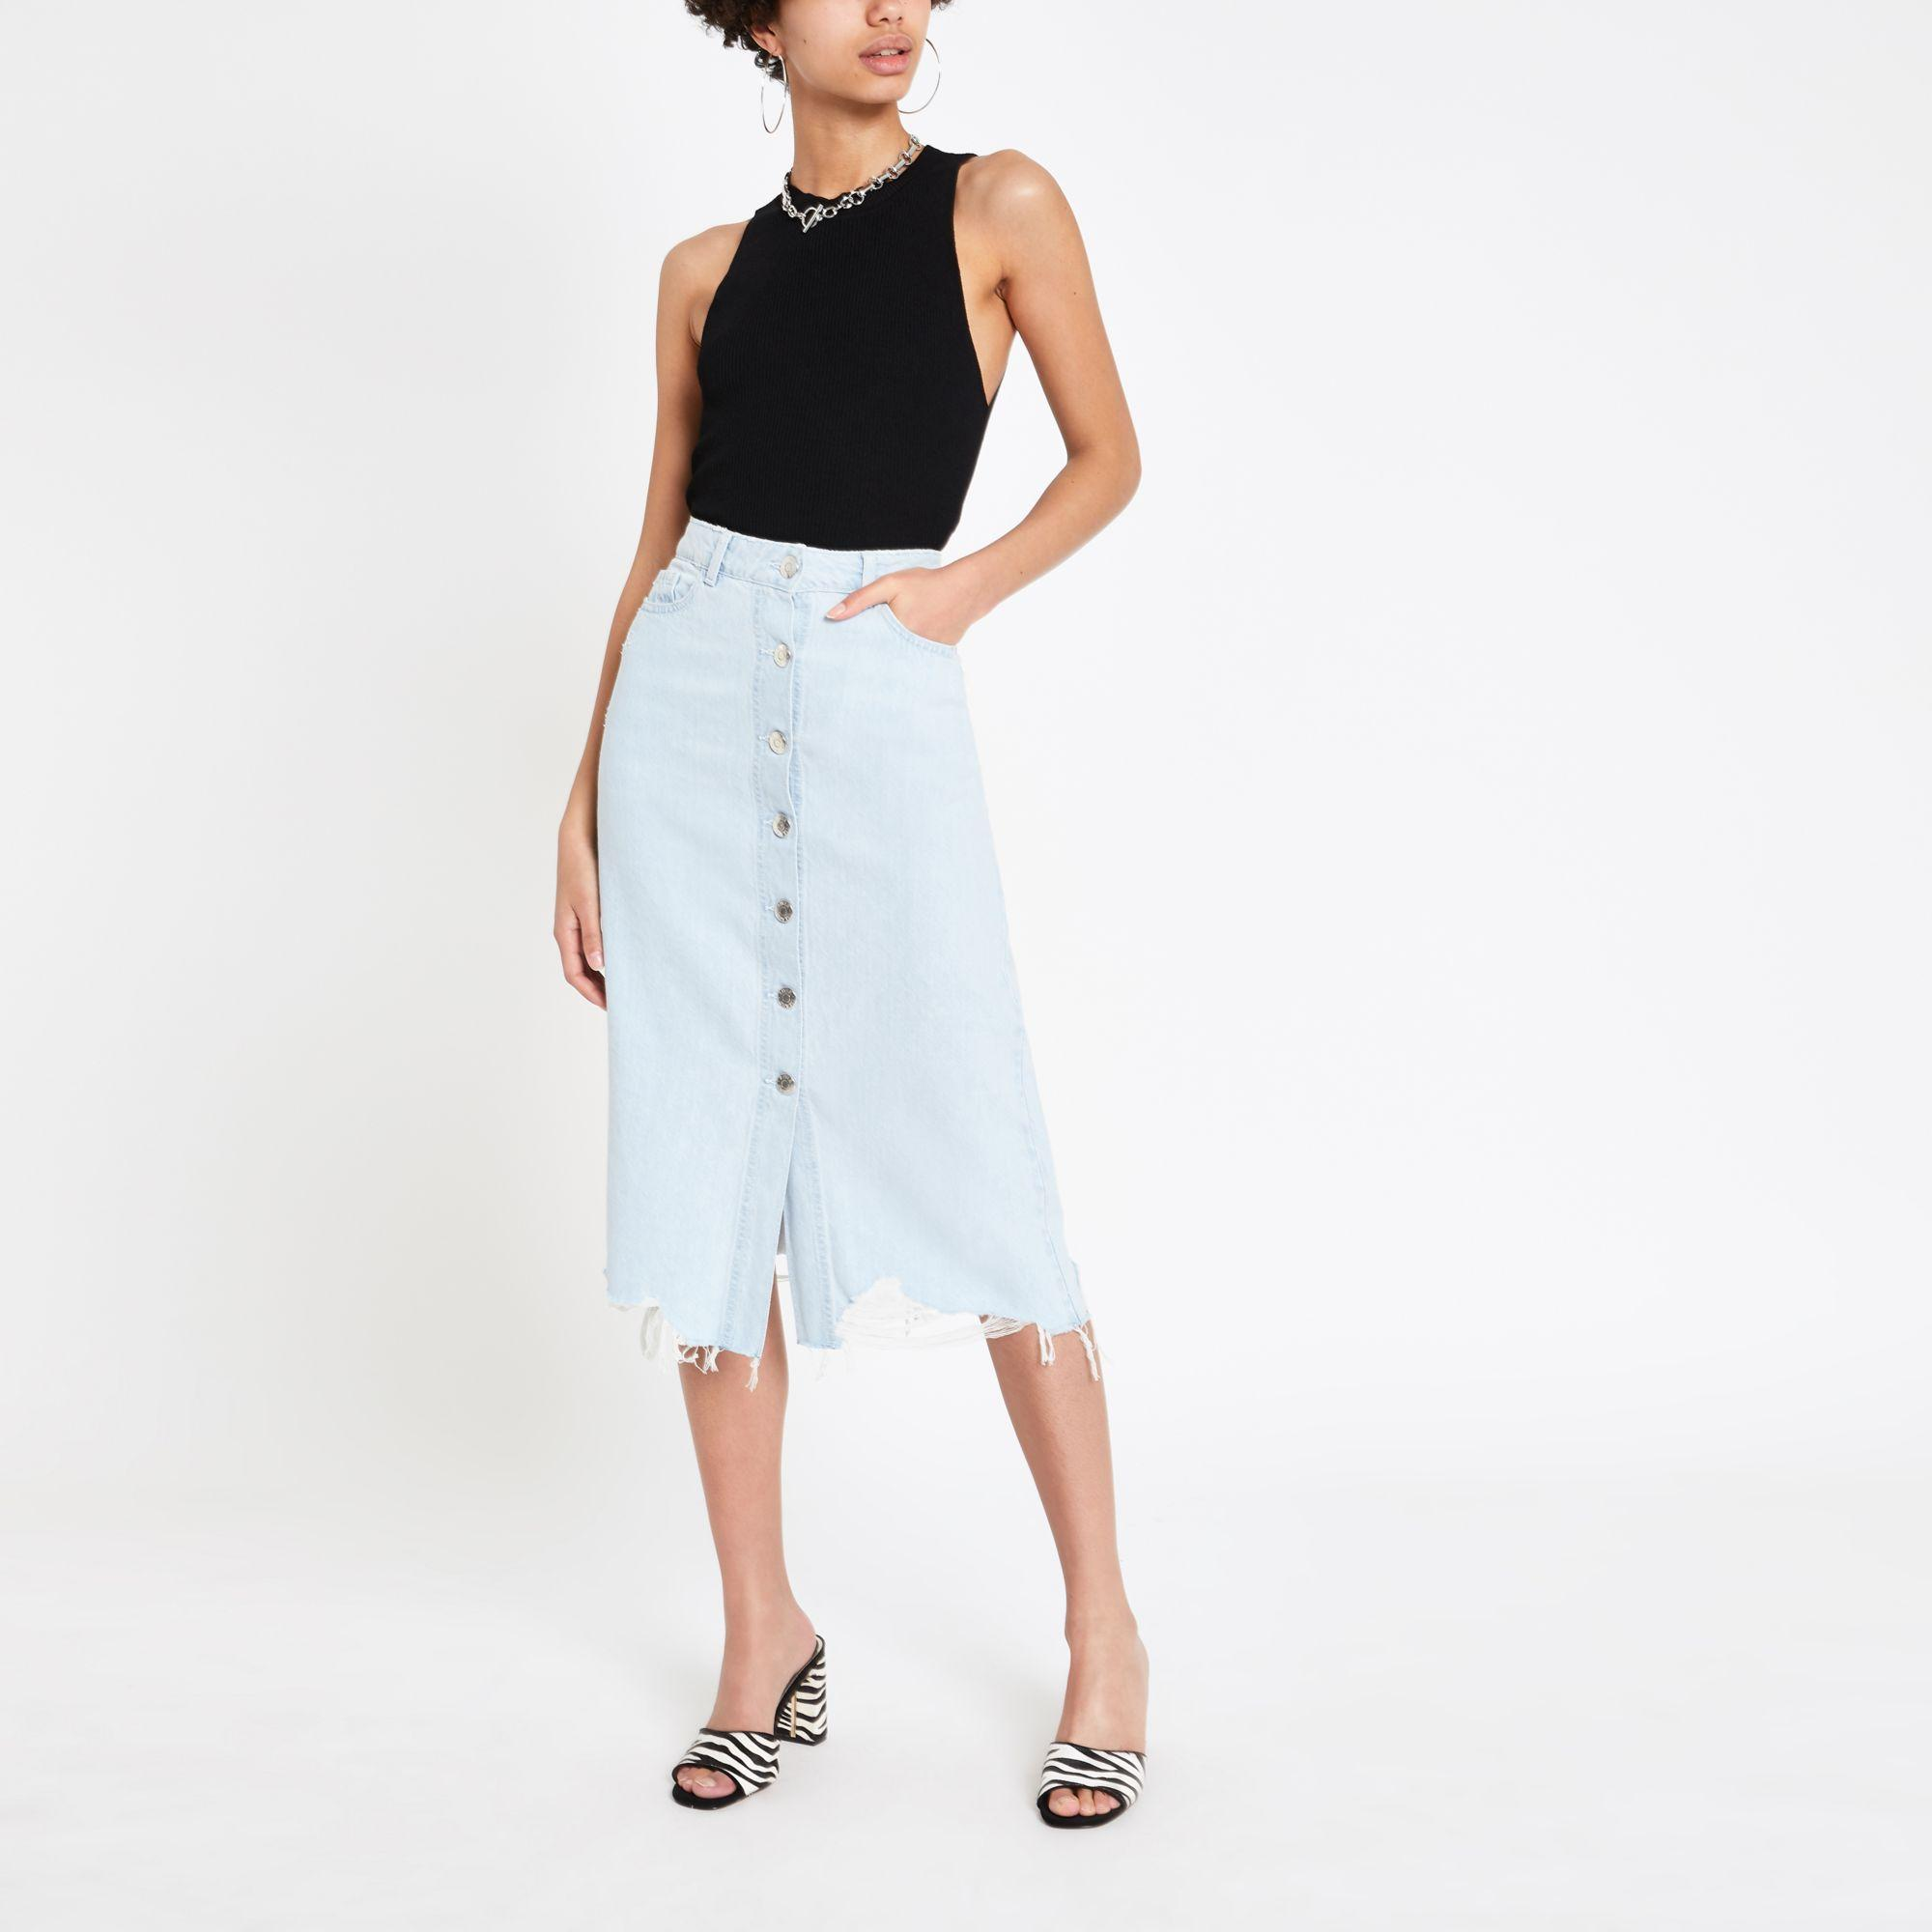 961fd3ec7d River Island - Light Blue Button Front Midi Denim Skirt - Lyst. View  fullscreen